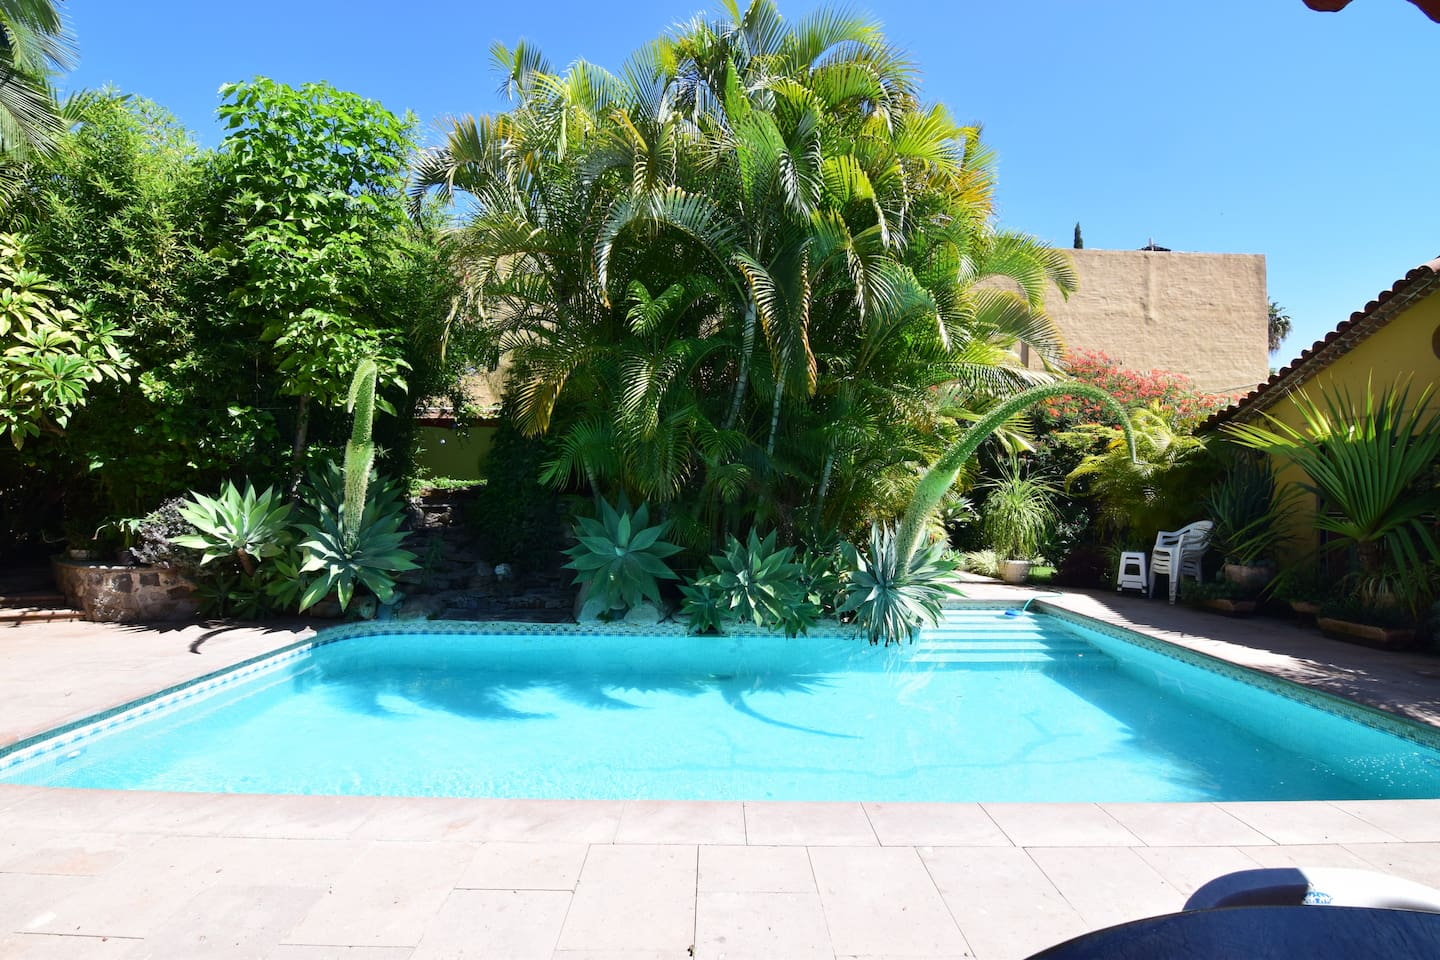 Solar heated swimming pool surrounded by lush garden